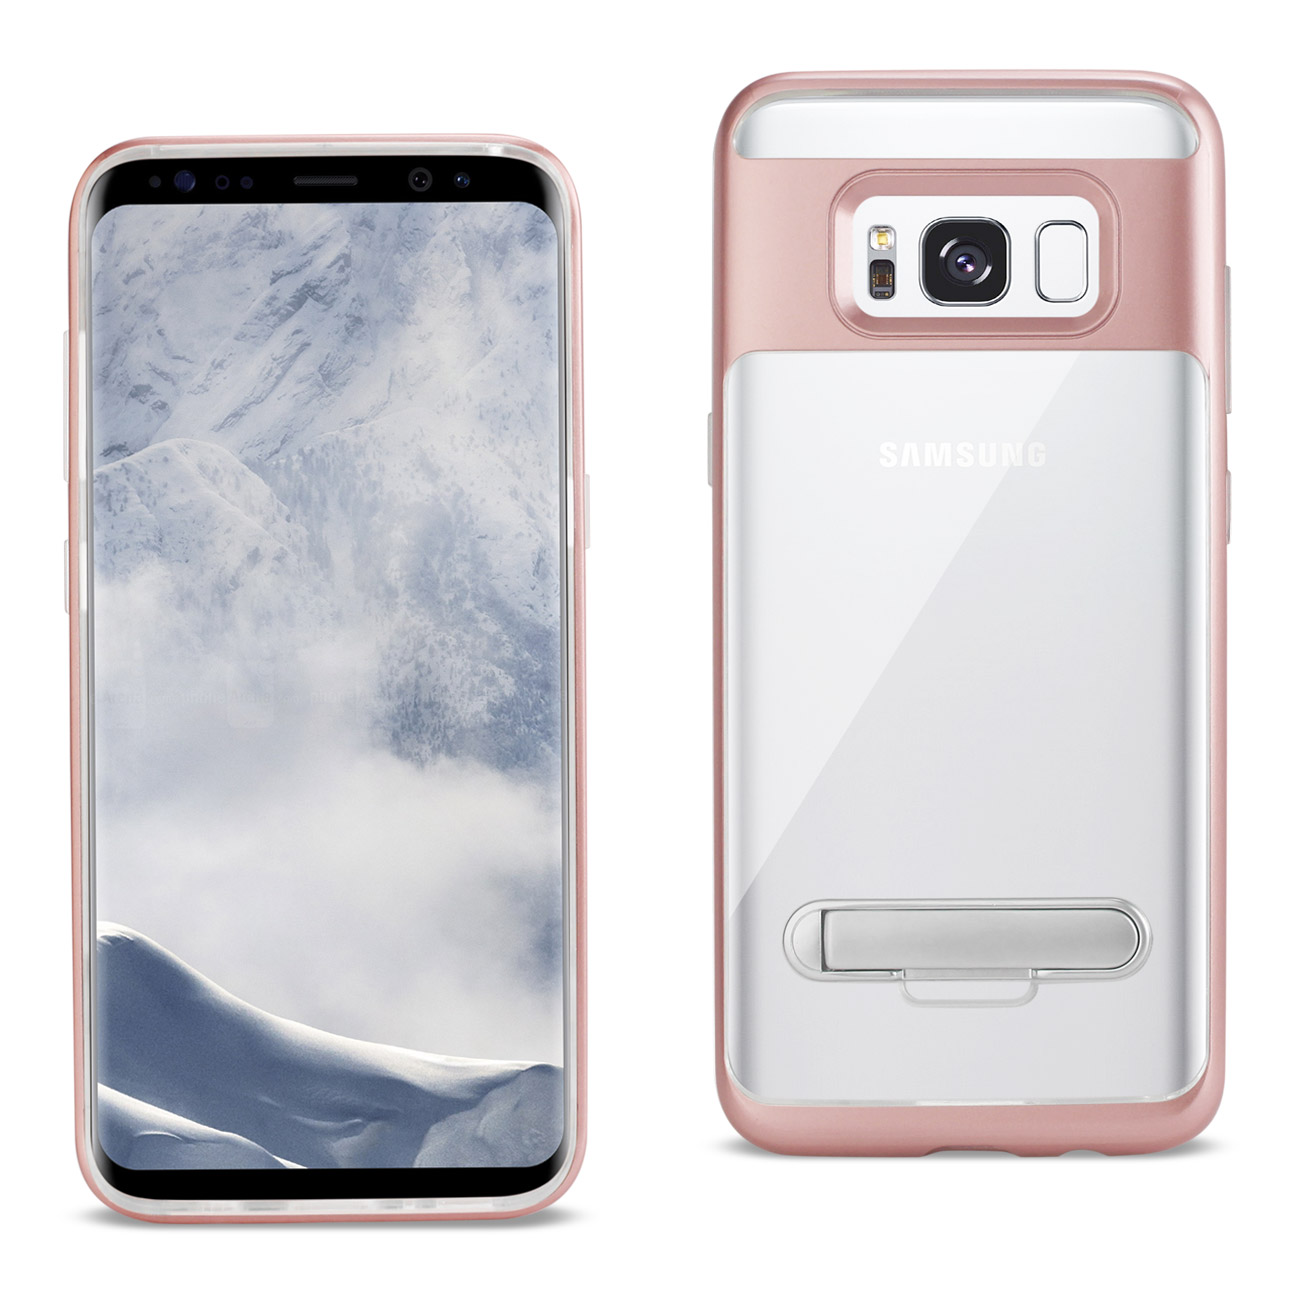 REIKO SAMSUNG GALAXY S8 EDGE/ S8 PLUS TRANSPRANT BUMPER CASE WITH KICKSTAND IN CLEAR ROSE GOLD